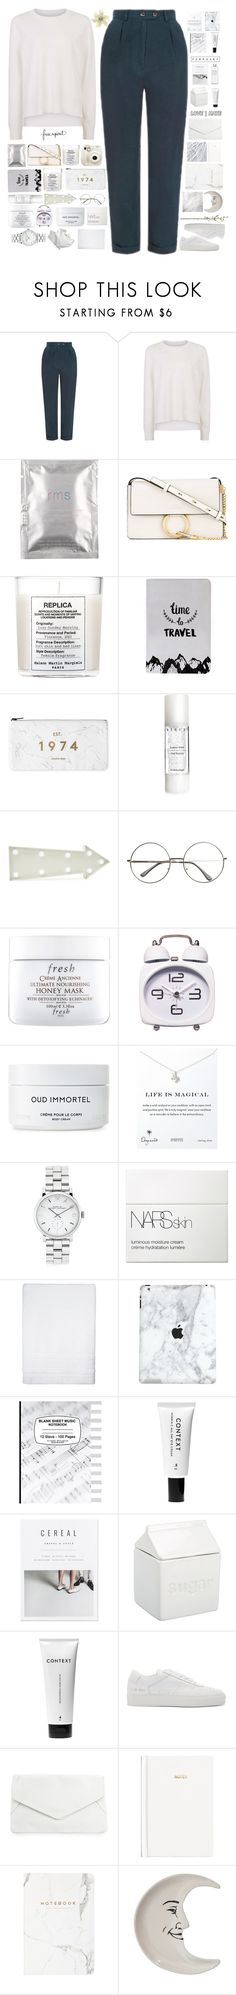 """""""all i love"""" by katerinxx ❤ liked on Polyvore featuring Topshop, Sweaty Betty, rms beauty, Chloé, Maison Margiela, Fujifilm, Chantecaille, New Look, Fresh and Byredo"""